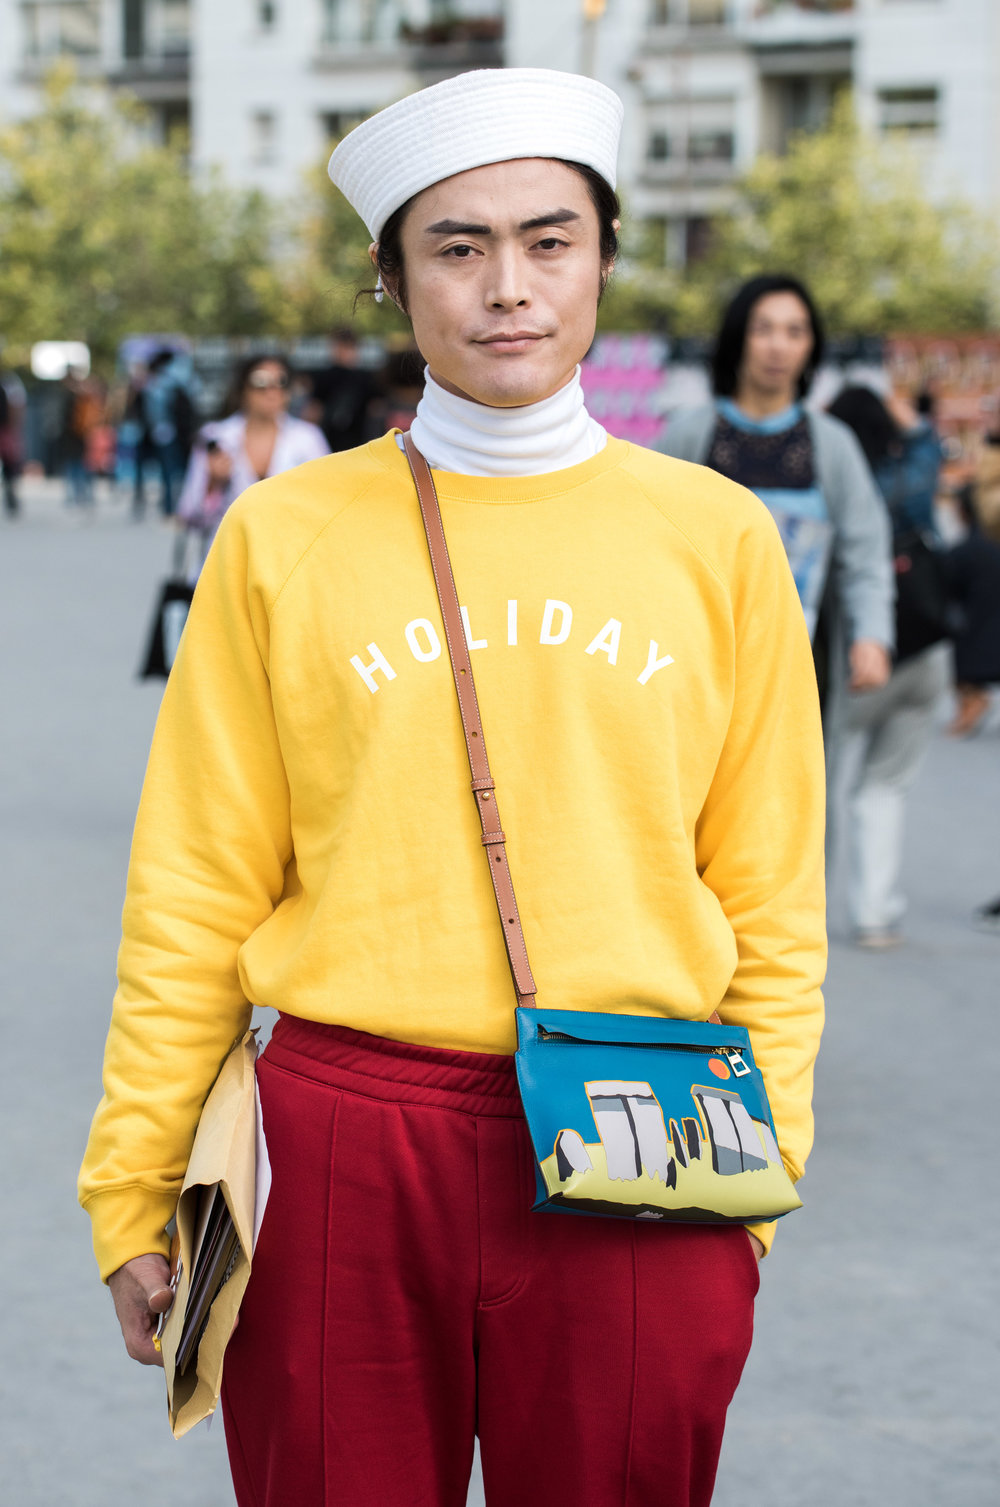 2016-09-29 - PARIS FASHION WEEK - day 3 - Miyaki Street style - 124 of 134 - _DSC9010 - 3 stars.jpg